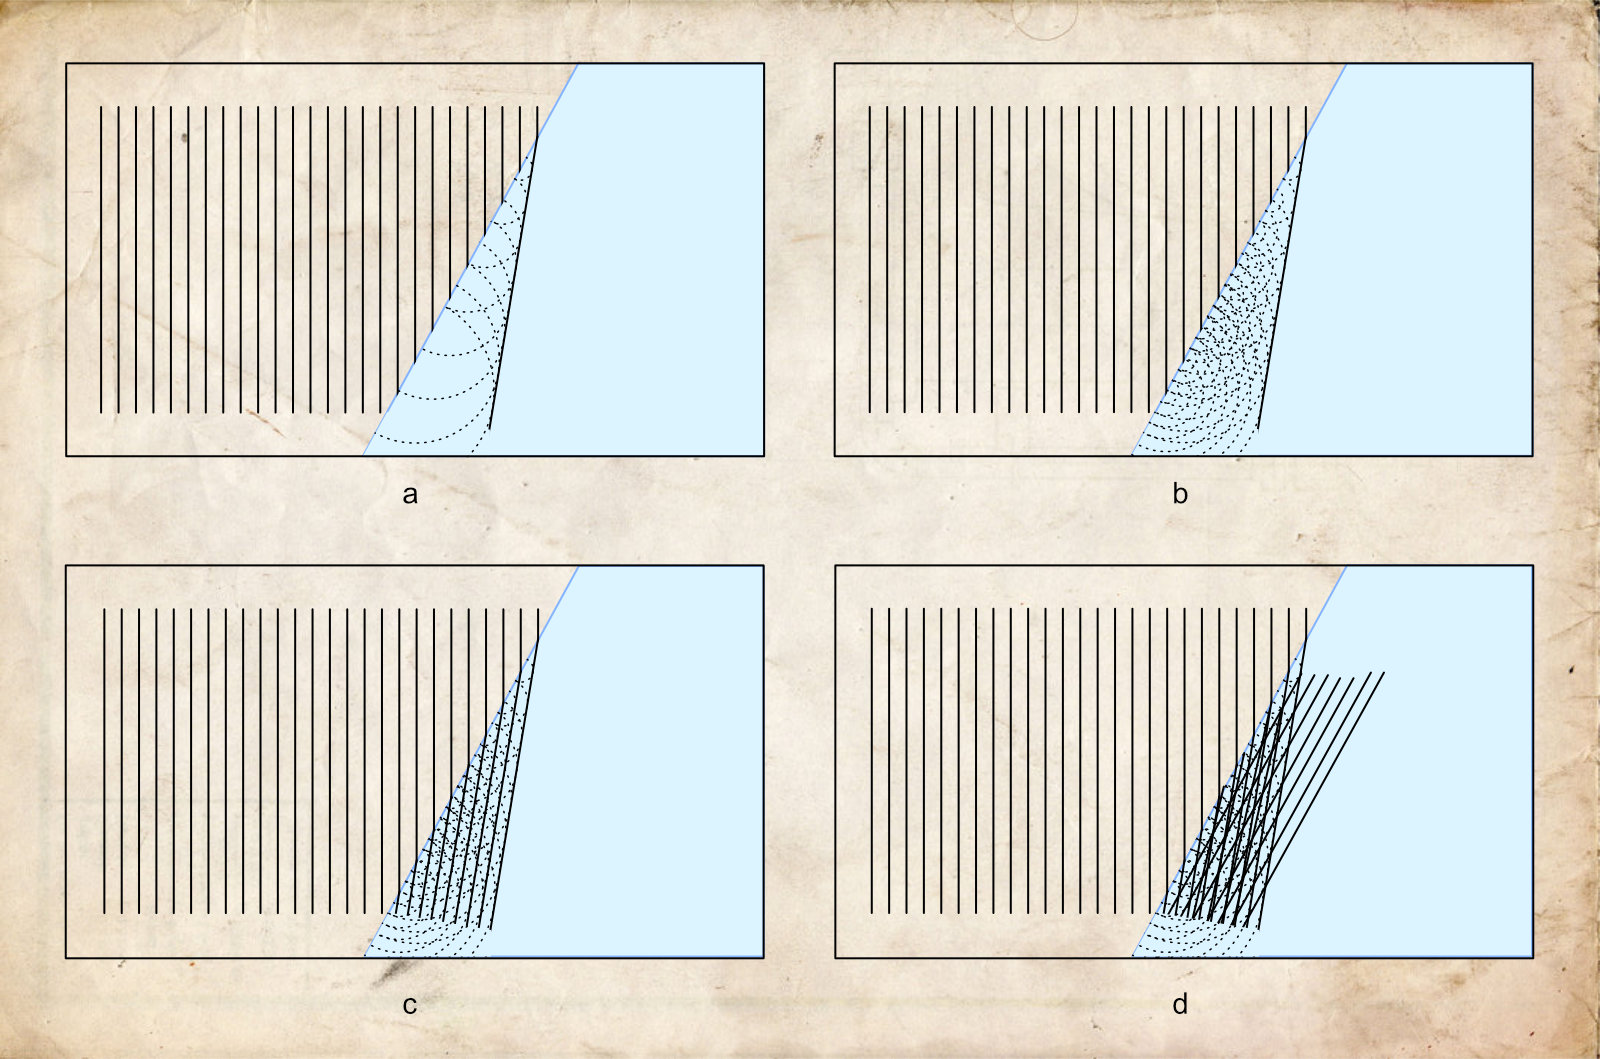 (a) The vertical lines represent the crests of the light wave. The blue area is the glass or liquid. As light only bends in these materials at an angle, the diagram shows a beam of light approaching the surface of the material at an angle. Huygens proposed that at every instance 'wavelets' (drawn here as segments of dotted circles) can be thought emanating at every point in space, growing over time. Connecting the wavefronts of those wavelets predicts the course of the next wave (crest). As the bottom of the incoming crests hit the surface first, those wavelets will have had time to grow larger before the top of the incoming crests hit the surface. (b) Over time, multiple wavelets can be thought to have developed. (c) Where the wavelets intersect each other wave crests can be drawn. The result seems to be the predicted new progression of the light beam inside of the material.(d) However, over time, multiple intersections will have developed. By Huygens' logic, multiple wave crests could be drawn. This, however, would result in a diffuse light wave, spreading out its light instead of a distinct bending of the one beam. Stating that a situation as sketched in (c) will occur is selectively choosing a preferred scenario while (d) shows multiple would occur. Hence, Huygens' principle seems right at first but ultimately breaks down over time.